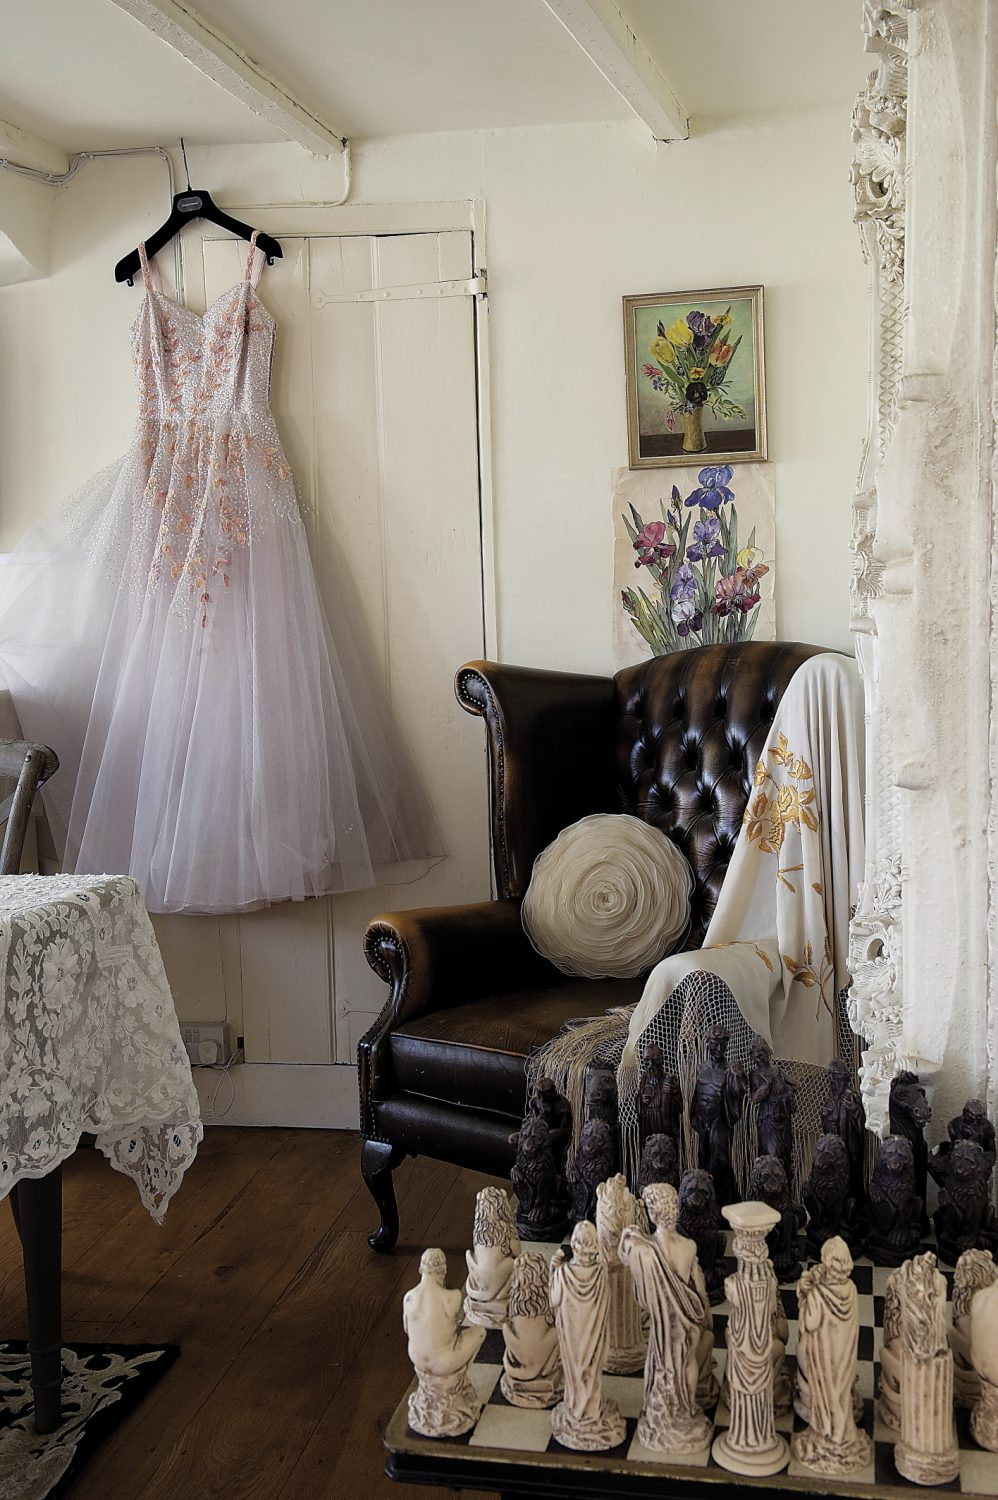 """The dining room. Hanging on one wall is a vintage 1950s gown made of pale, shell pink silk with layers of pearl grey tulle and a cascade of appliquéd blossom on the bodice. """"I love vintage style. I like the elegance of the dresses of the 40s and 50s and find them really inspiring,"""" says Andrew"""